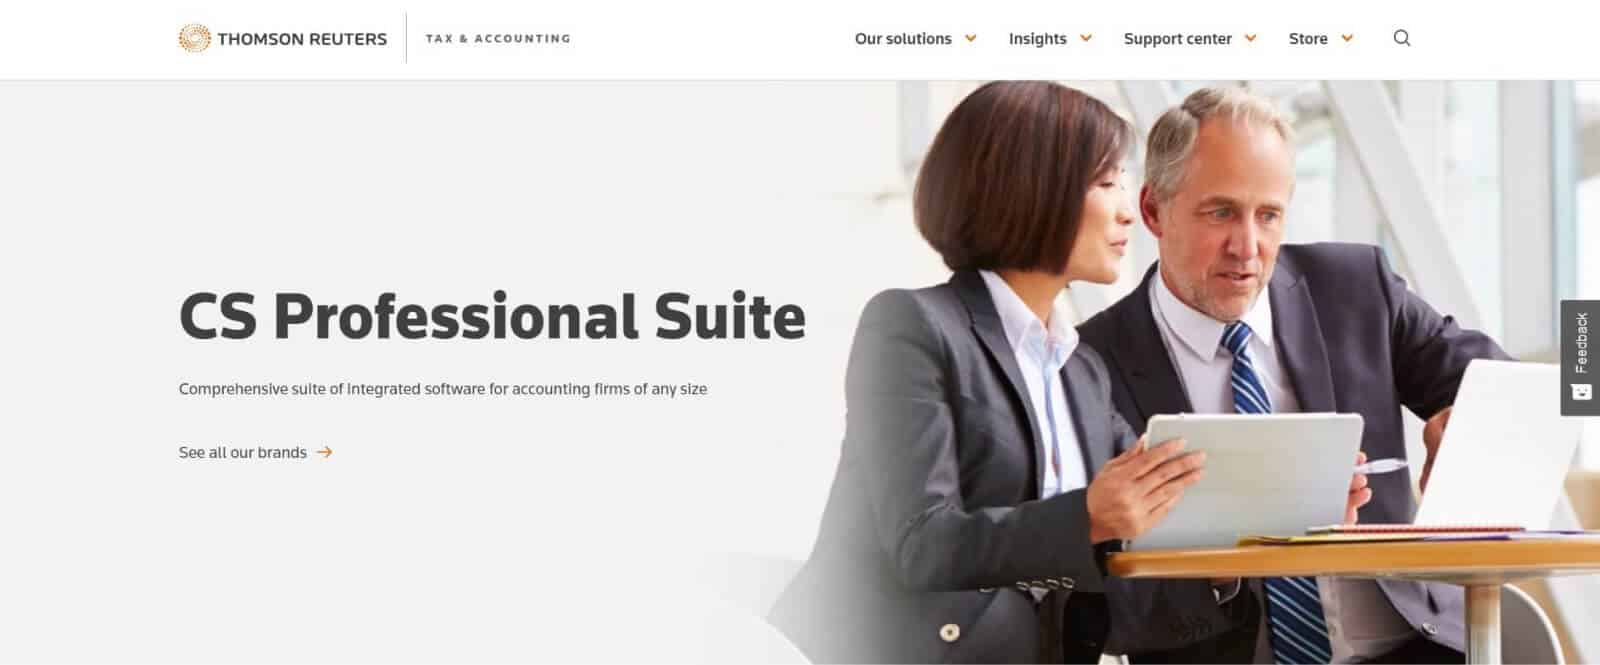 CS Professional Suite is a software suite designed for accounting and tax professionals